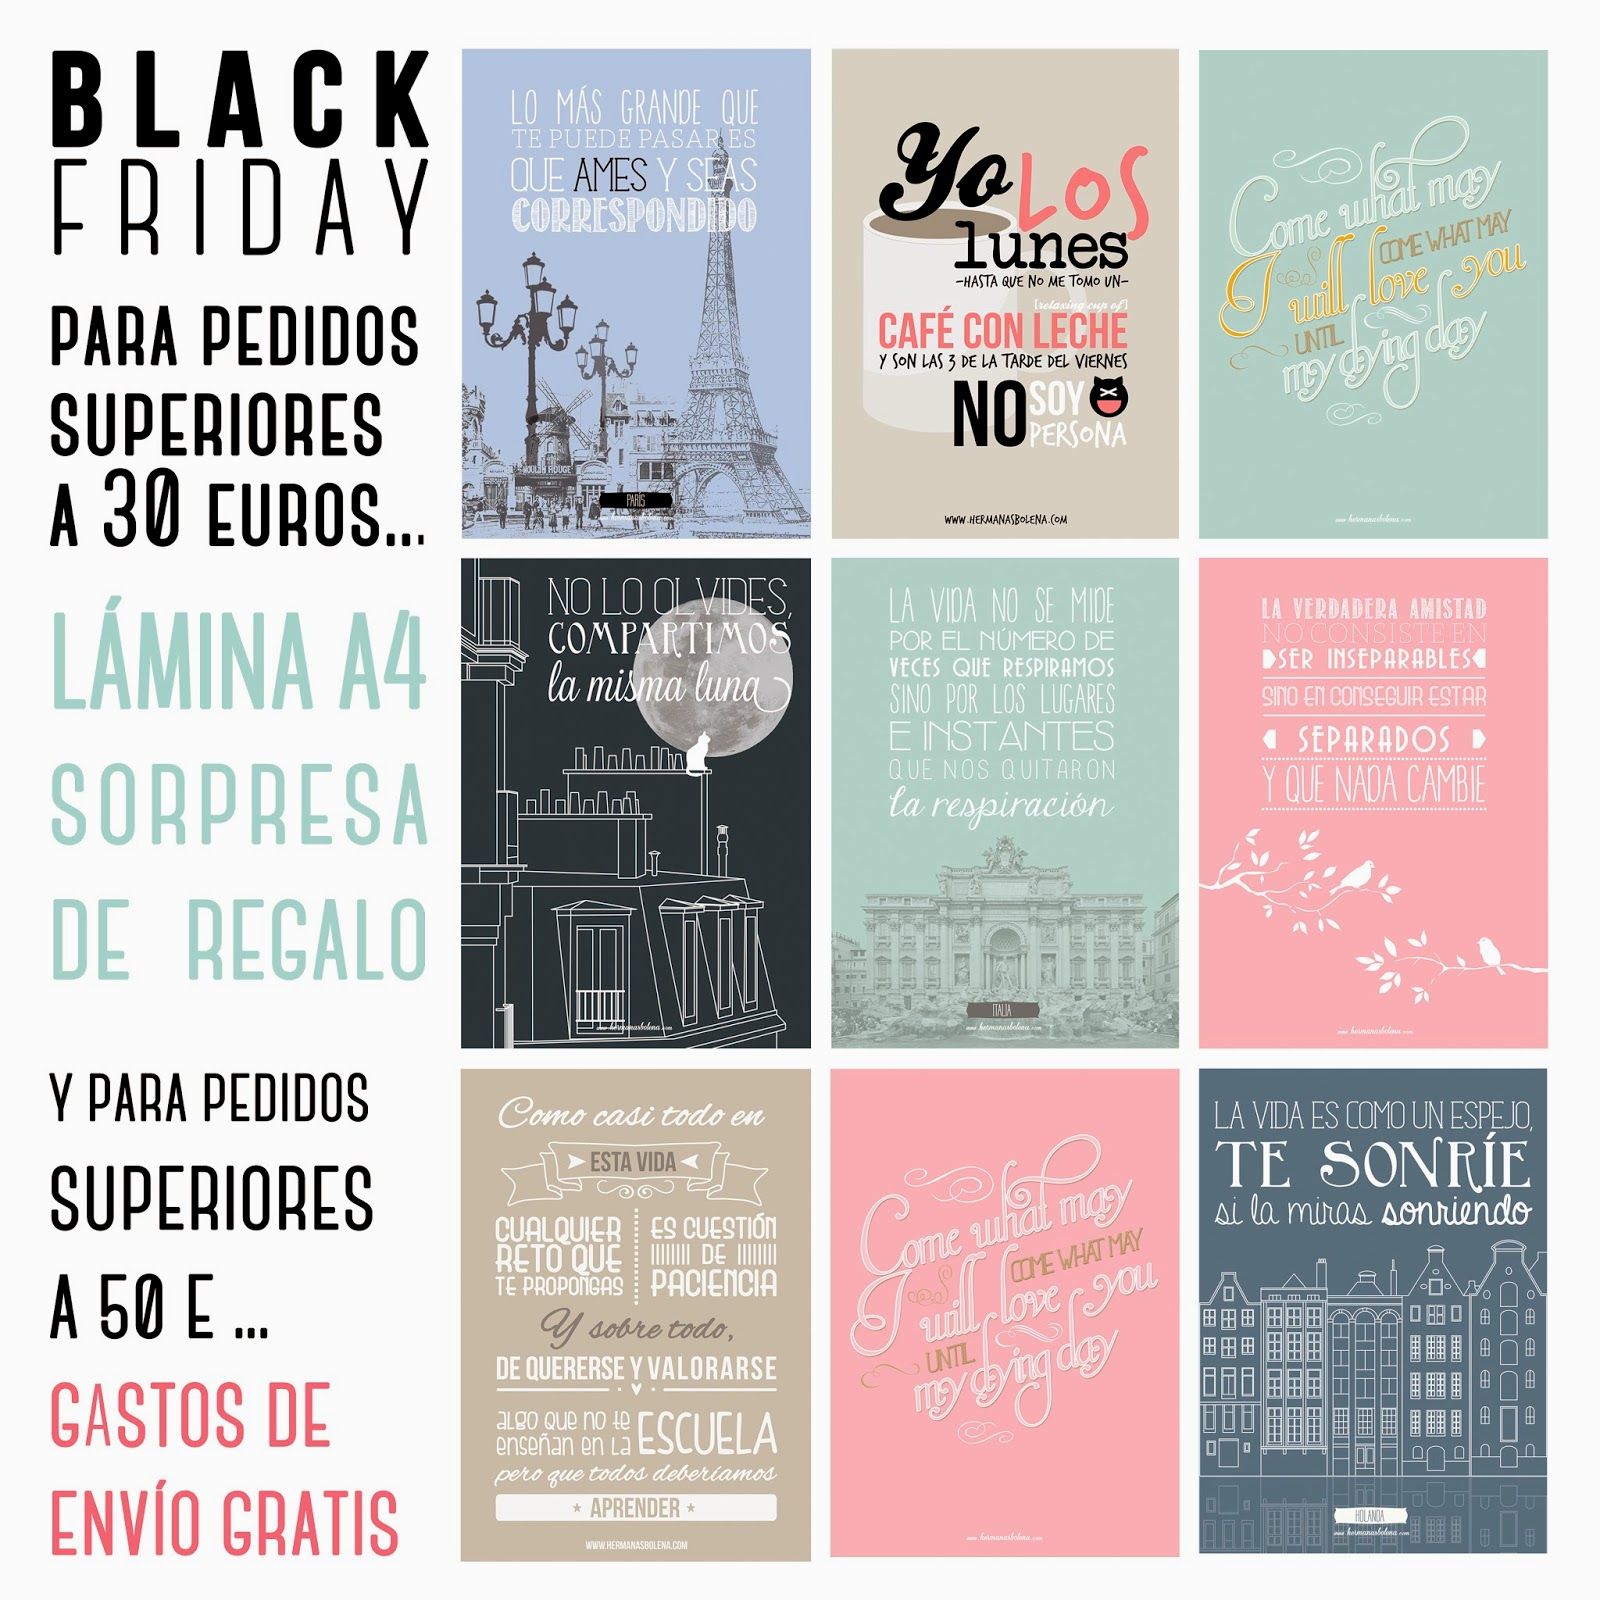 black friday 2014 hermanas bolena